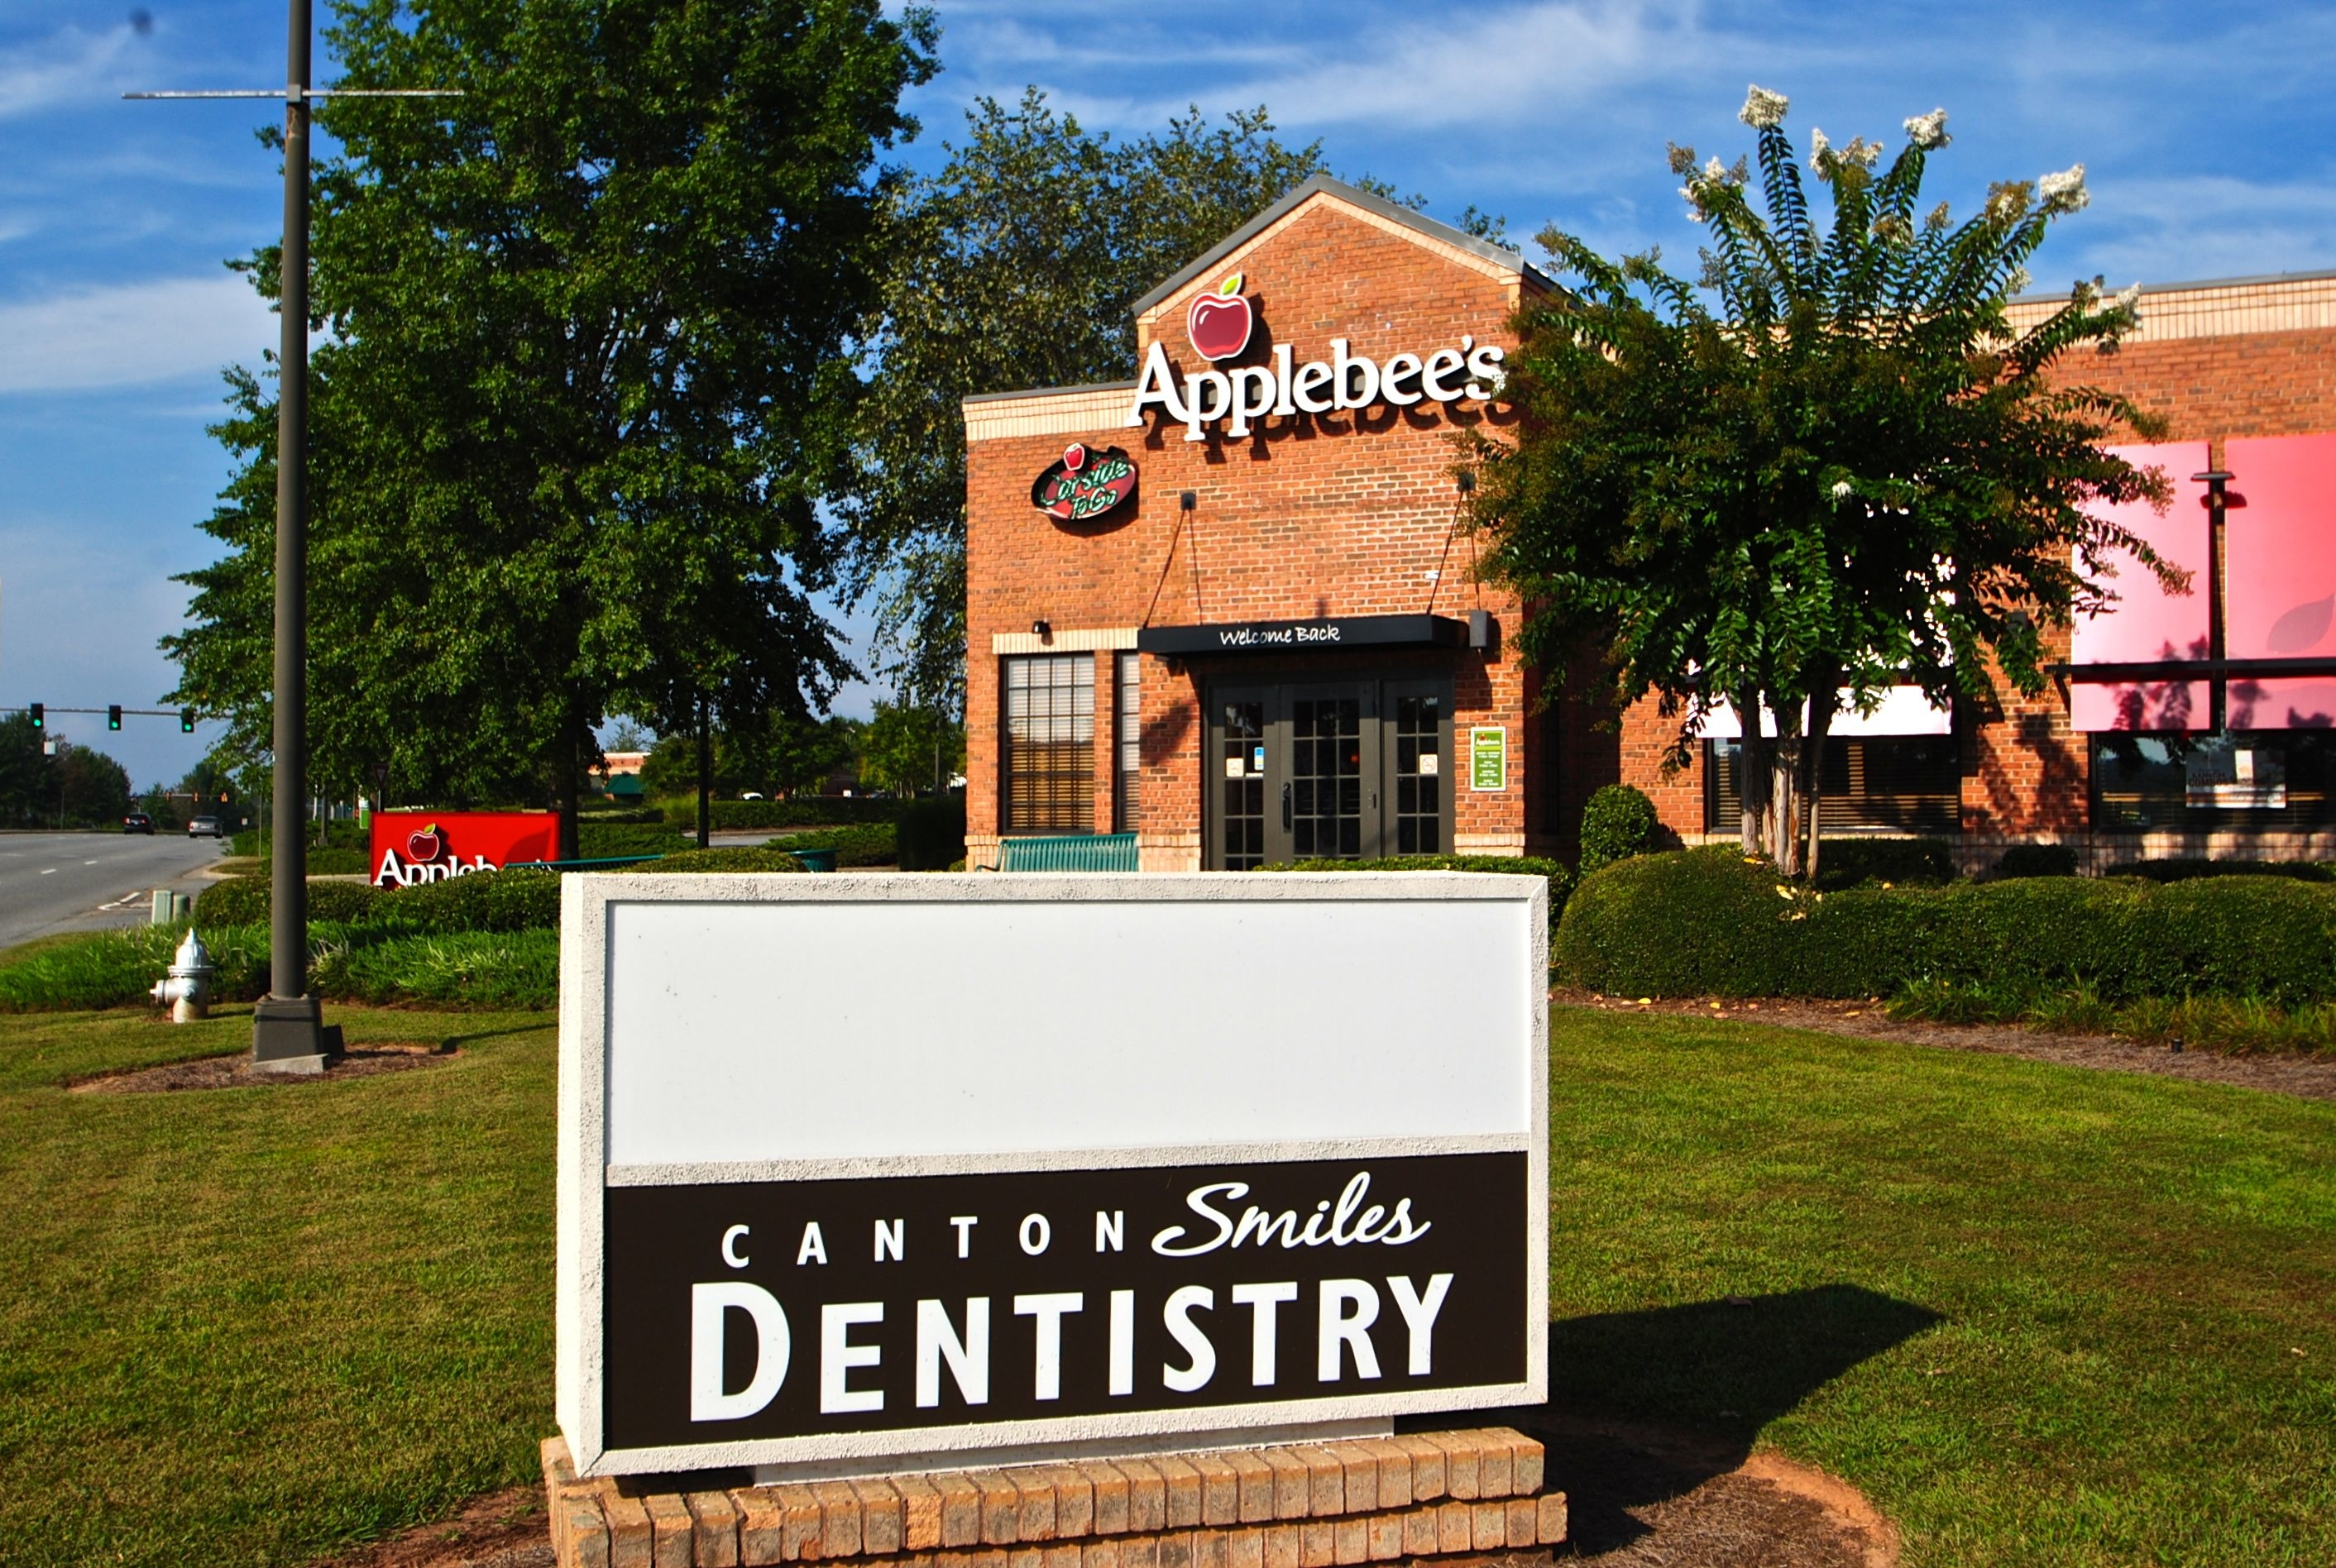 Canton Smiles Dentistry and Orthodontics image 9